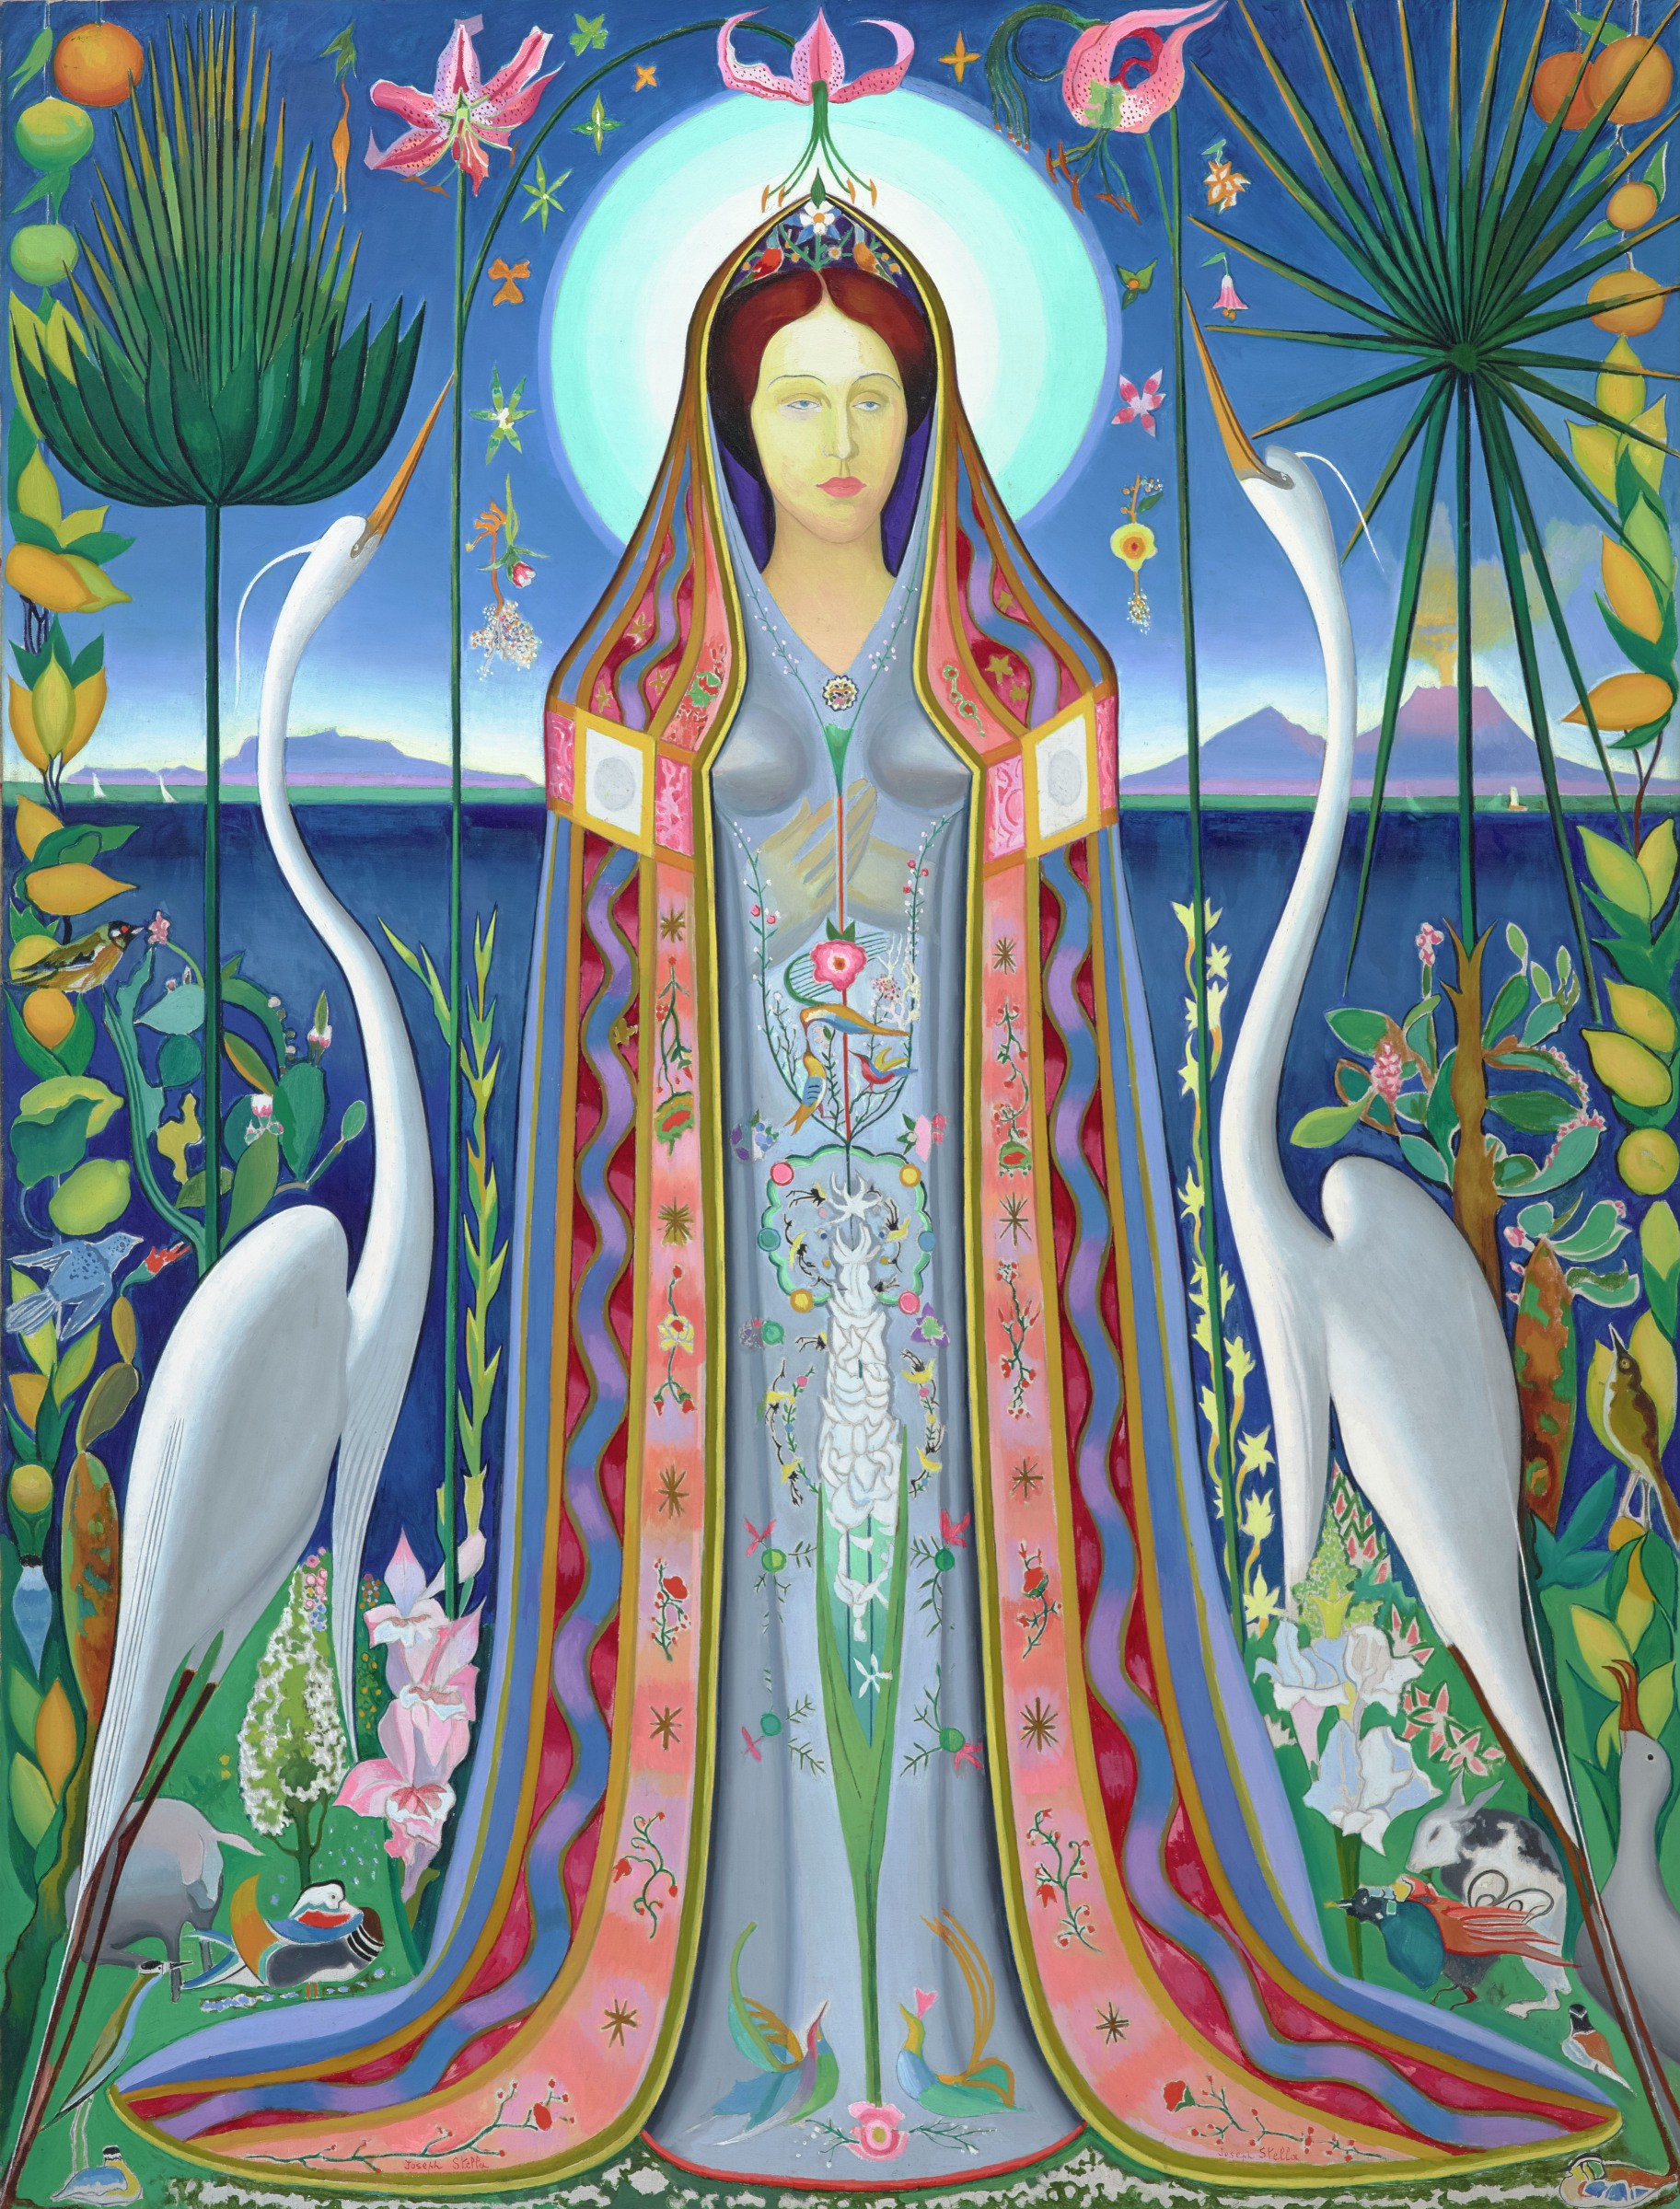 Vibrant painting of a saintly figure surrounded by a bounty of mountains, animals, and vegetation.